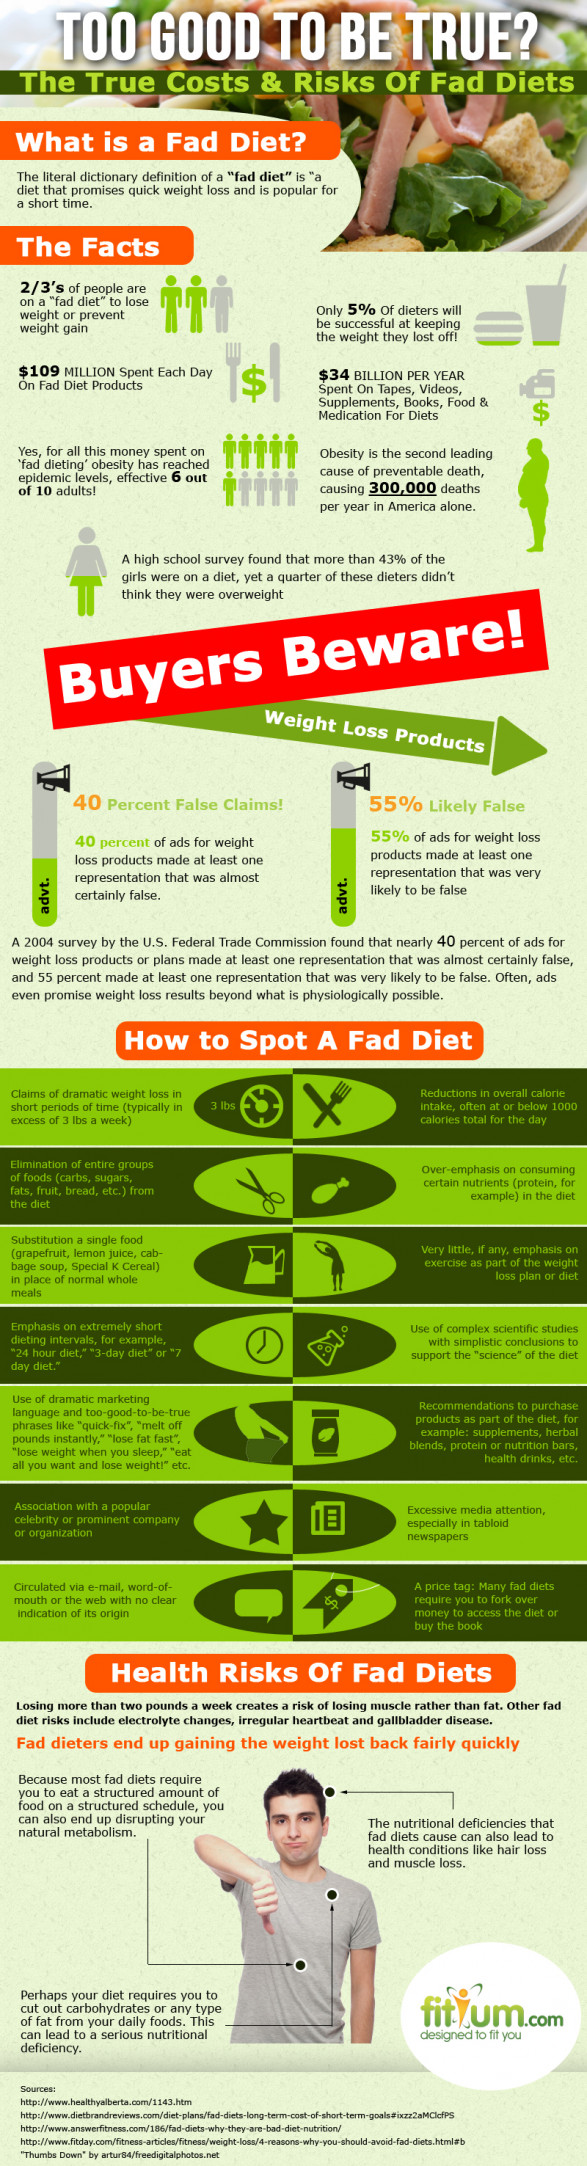 What is the true cost of fad diets?